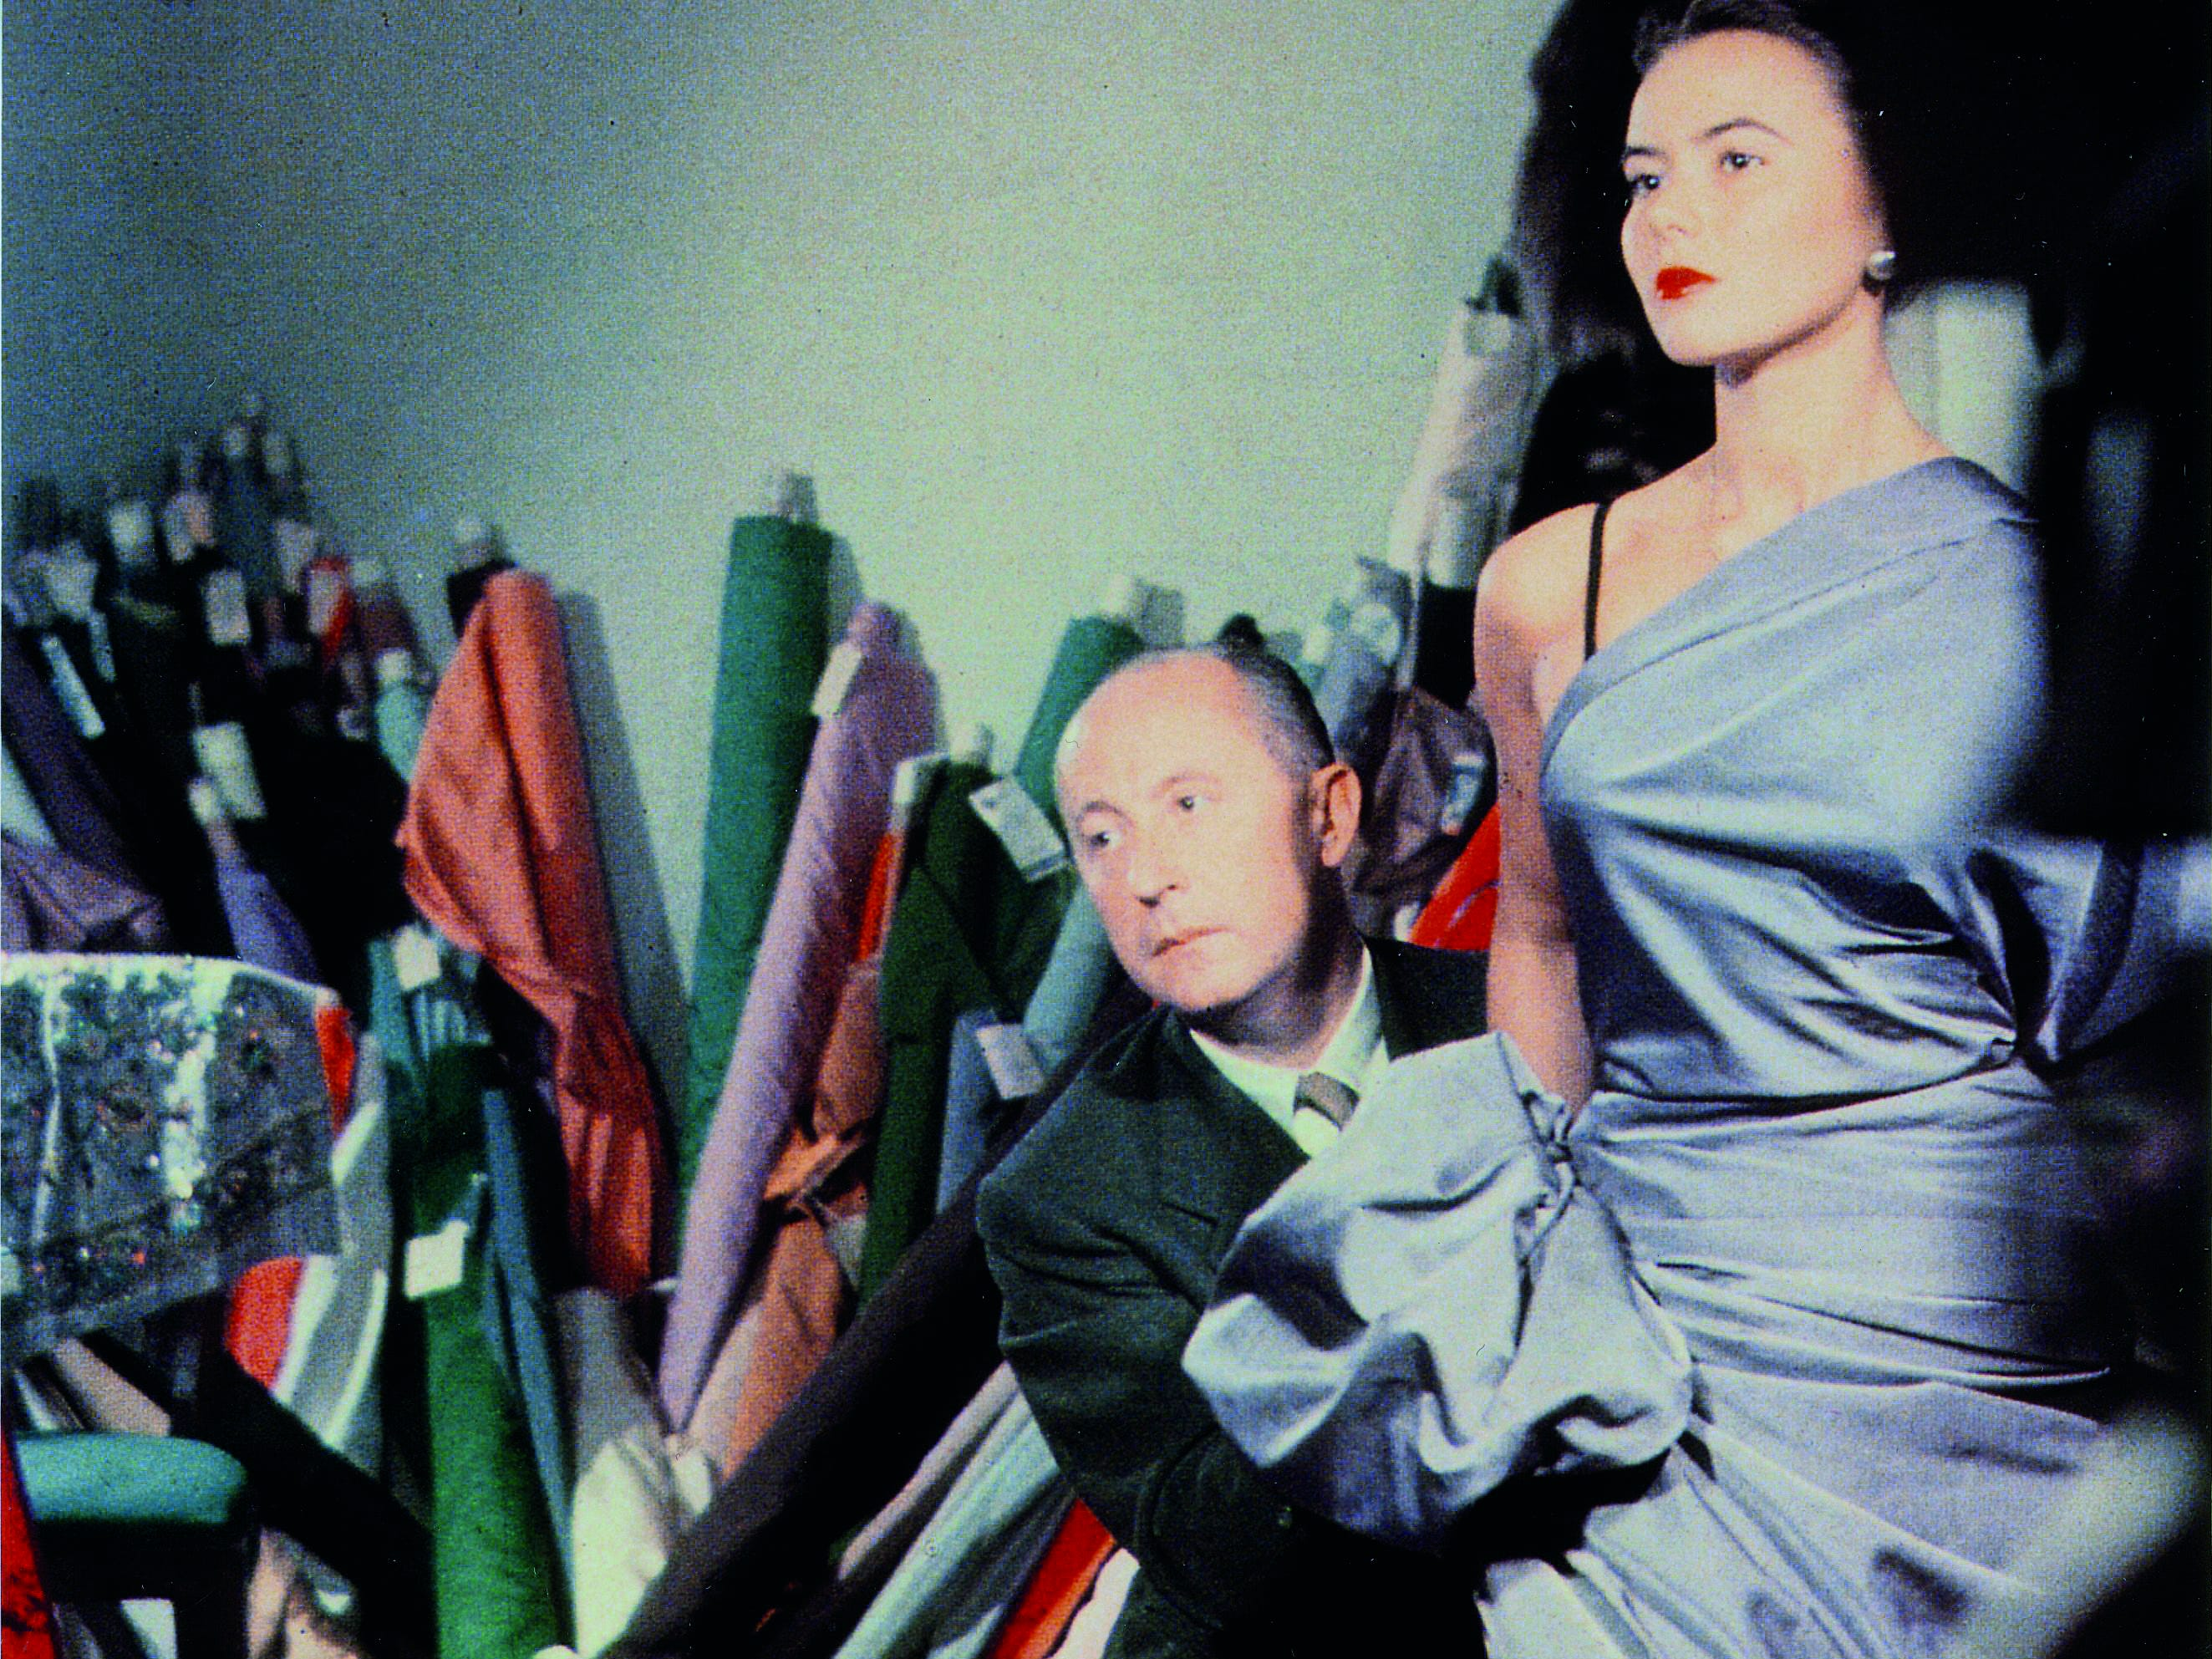 """Dior is coming to Denver this winter — in the form of an art museum exhibit covering more than 70 years of the designer's legacy and influence. """"Dior: From Paris to the World"""" features 150 haute couture dresses, accessories, photos, runway videos, original sketches and archival material."""